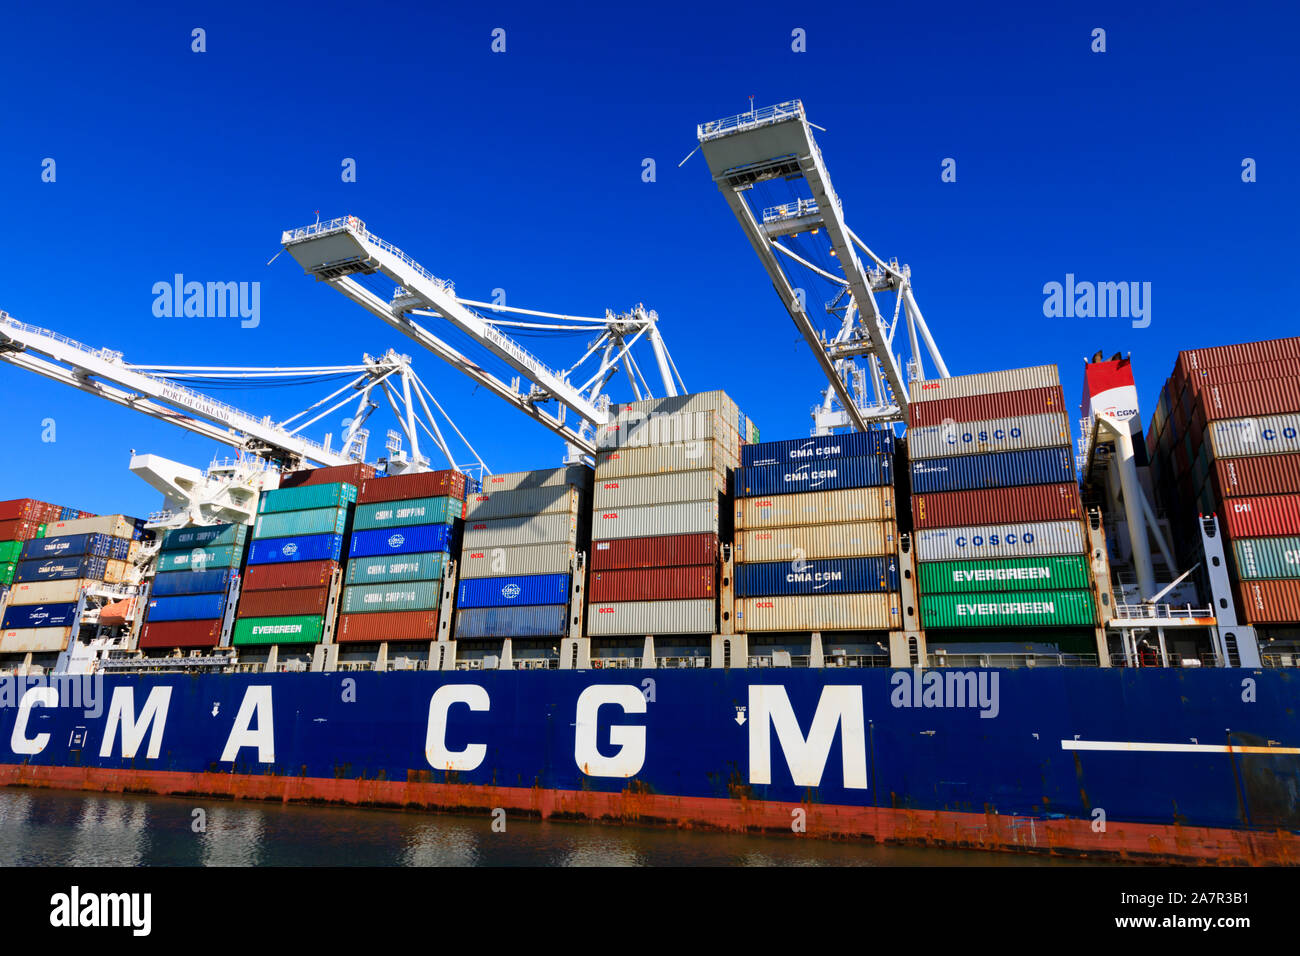 French owned, CMA CGM container ship being loaded, Port of Oakland, Alameda County, California, United States of America. Stock Photo